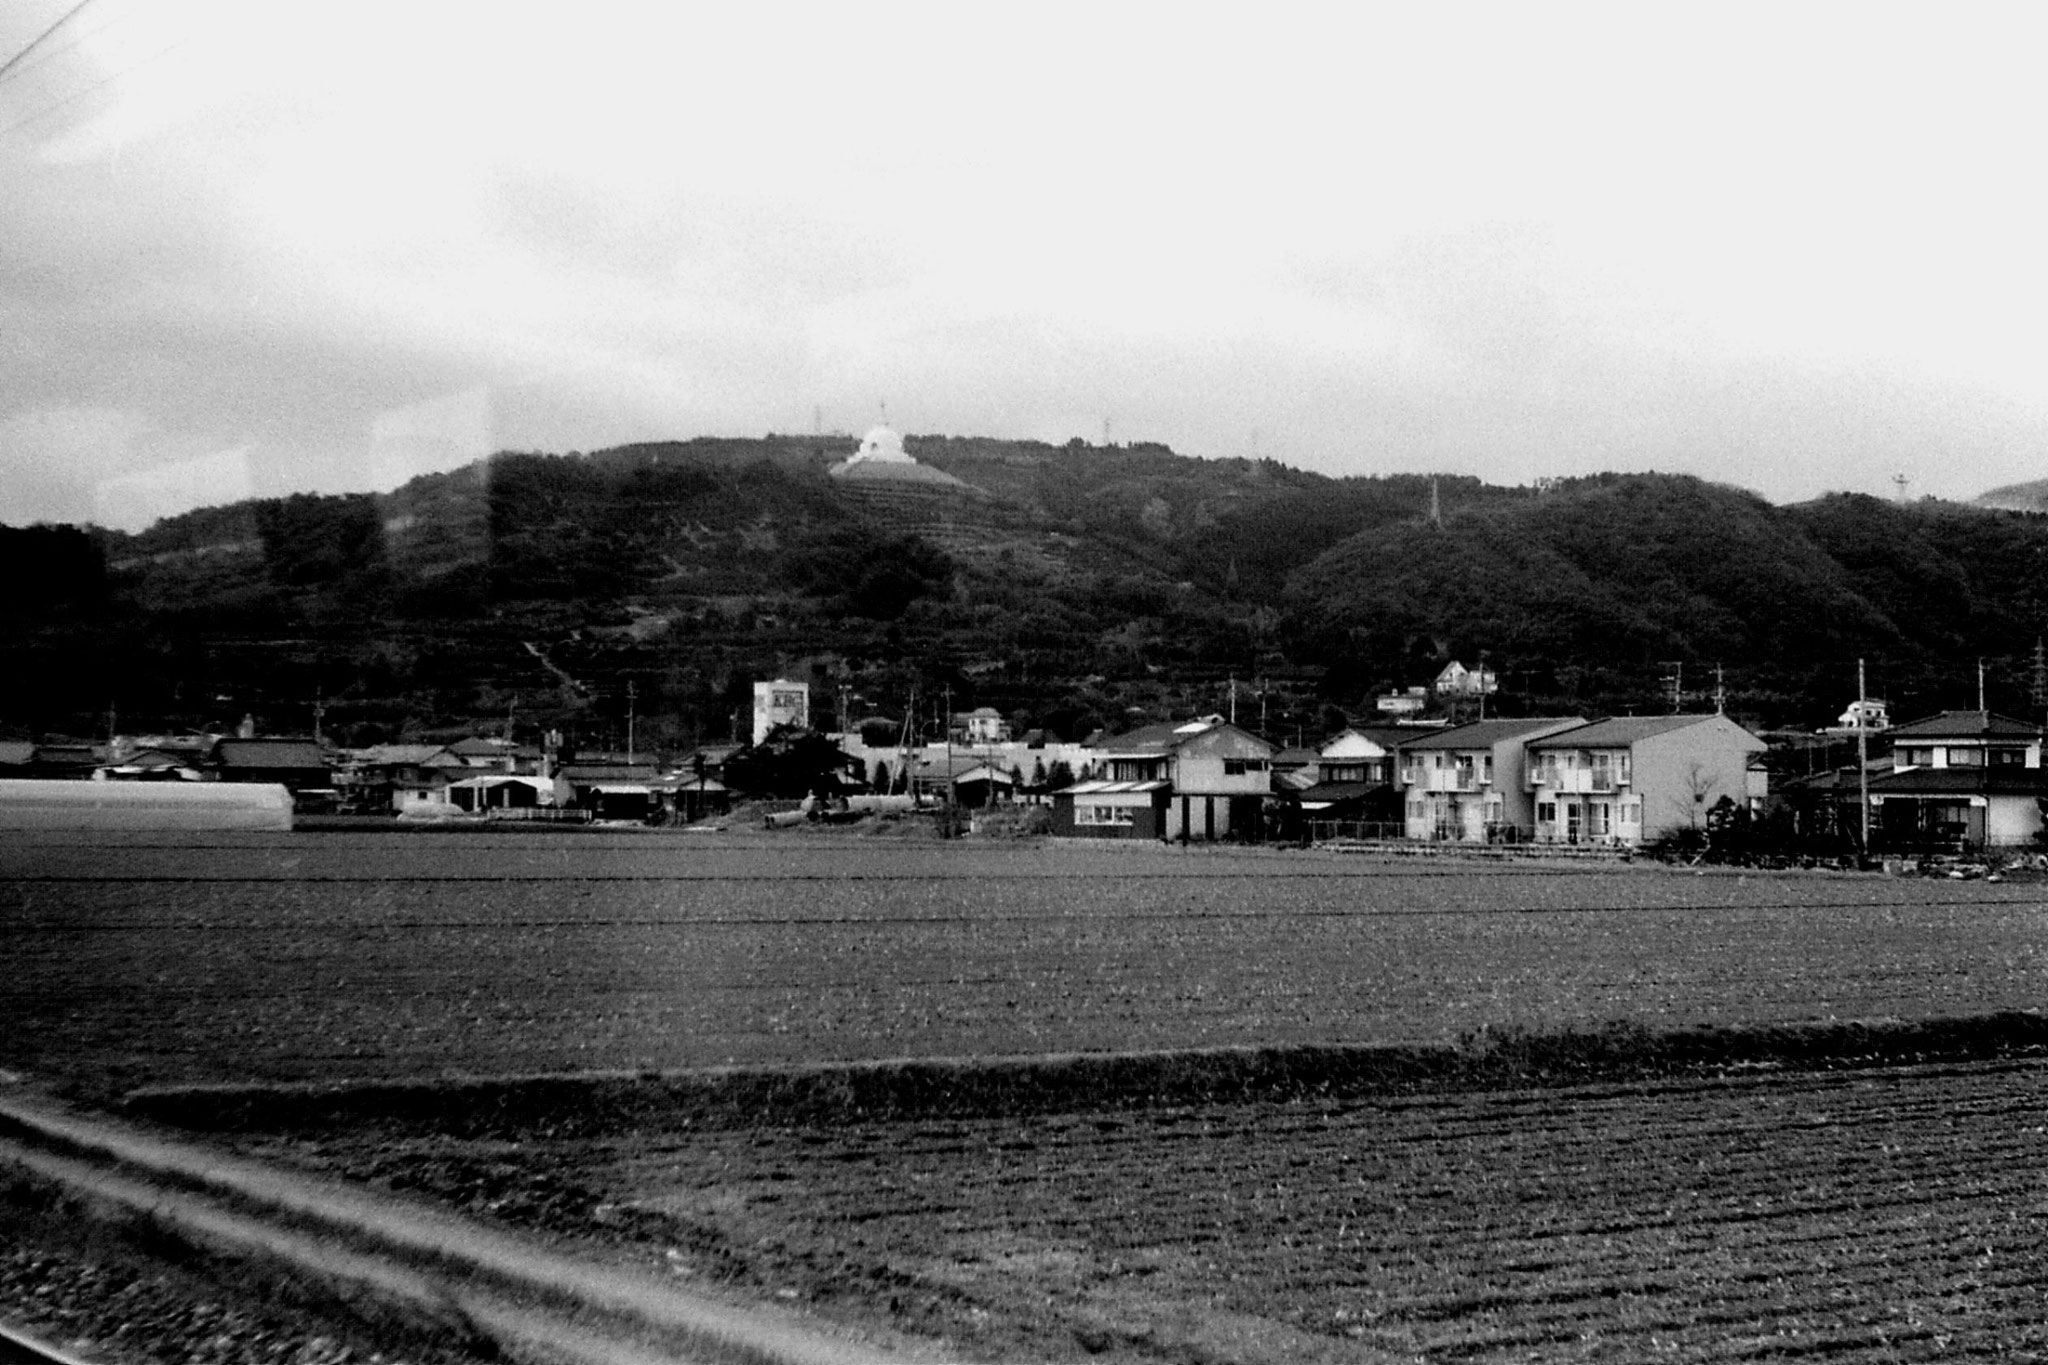 20/1/1989: 29: nr Hizen Yamaguchi, white dome on hill 2pm.